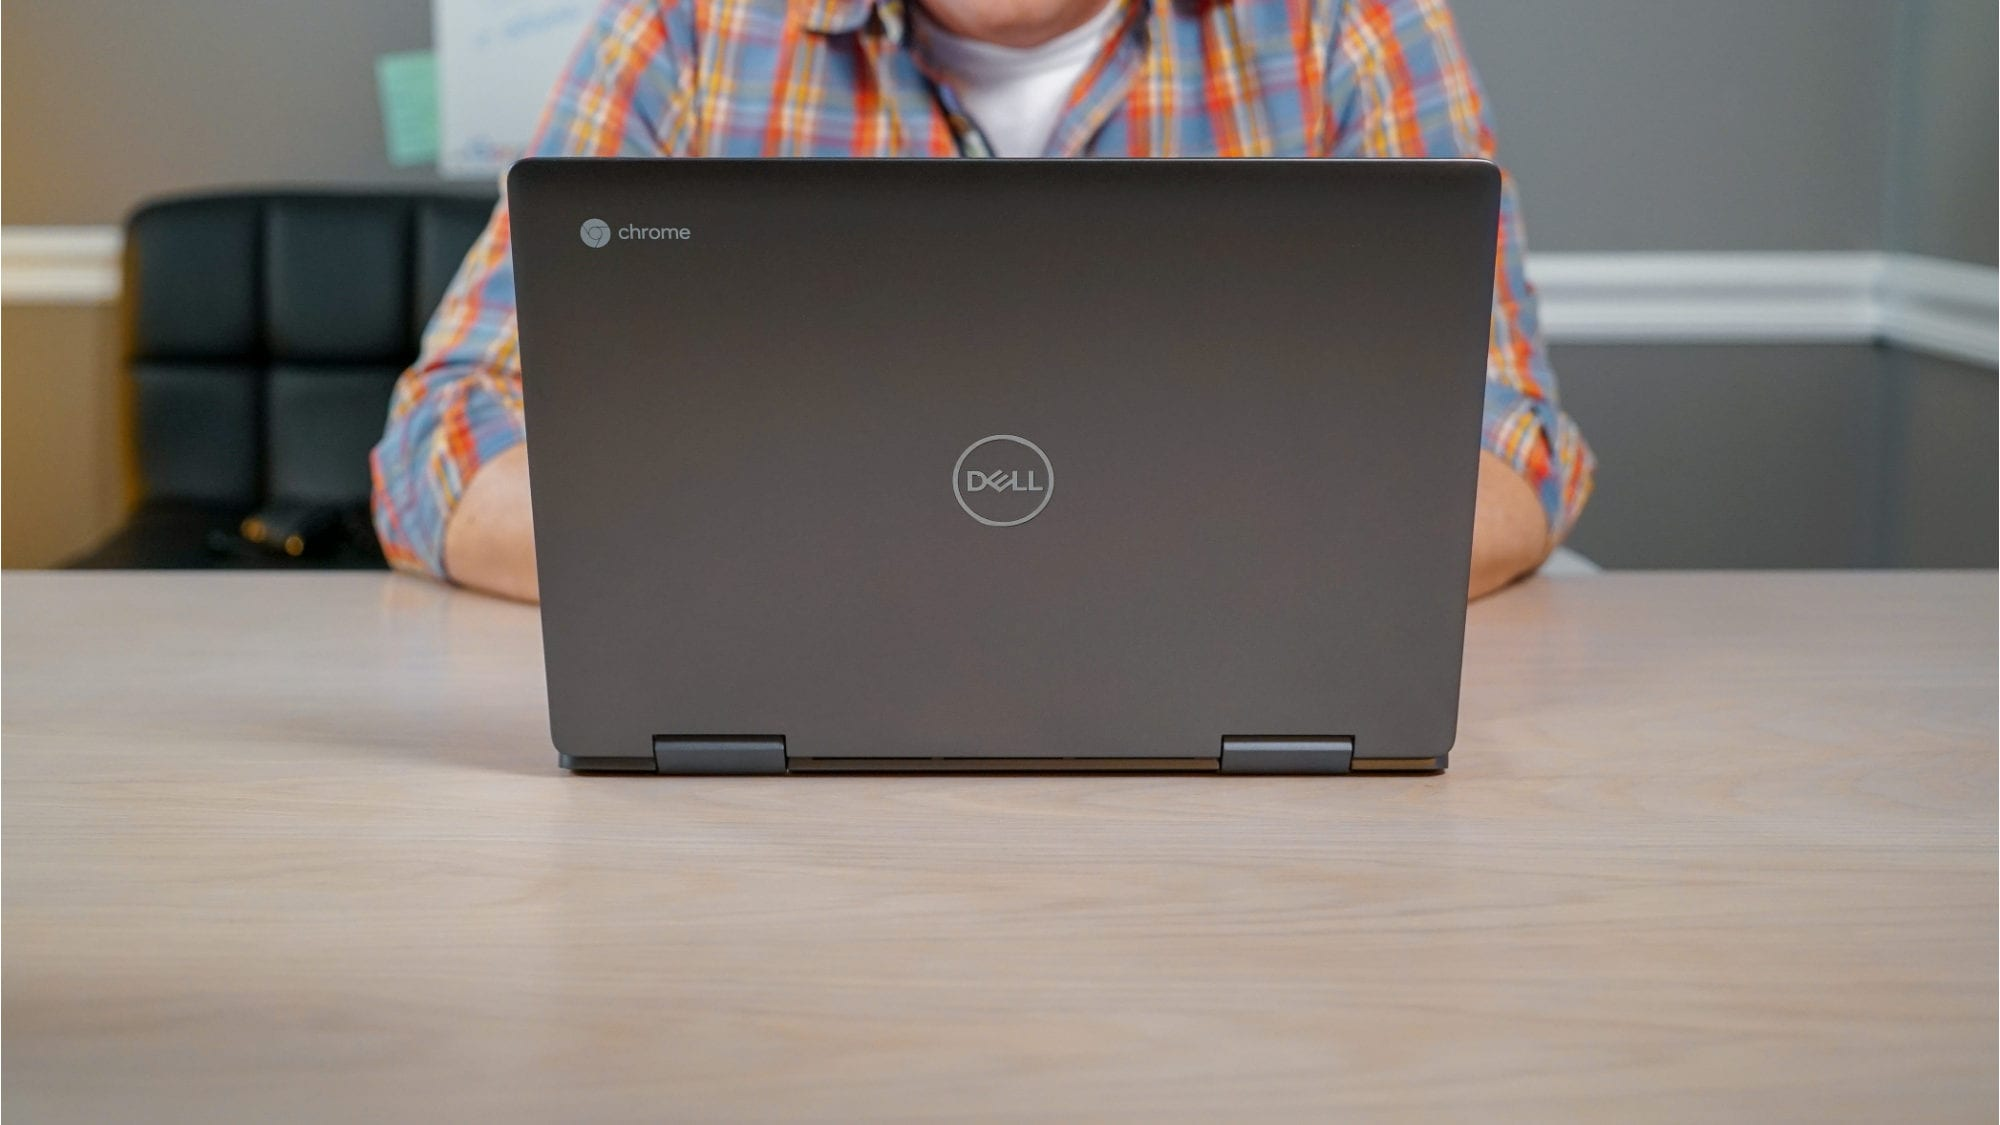 Dell Inspiron Chromebook 14 First Impressions